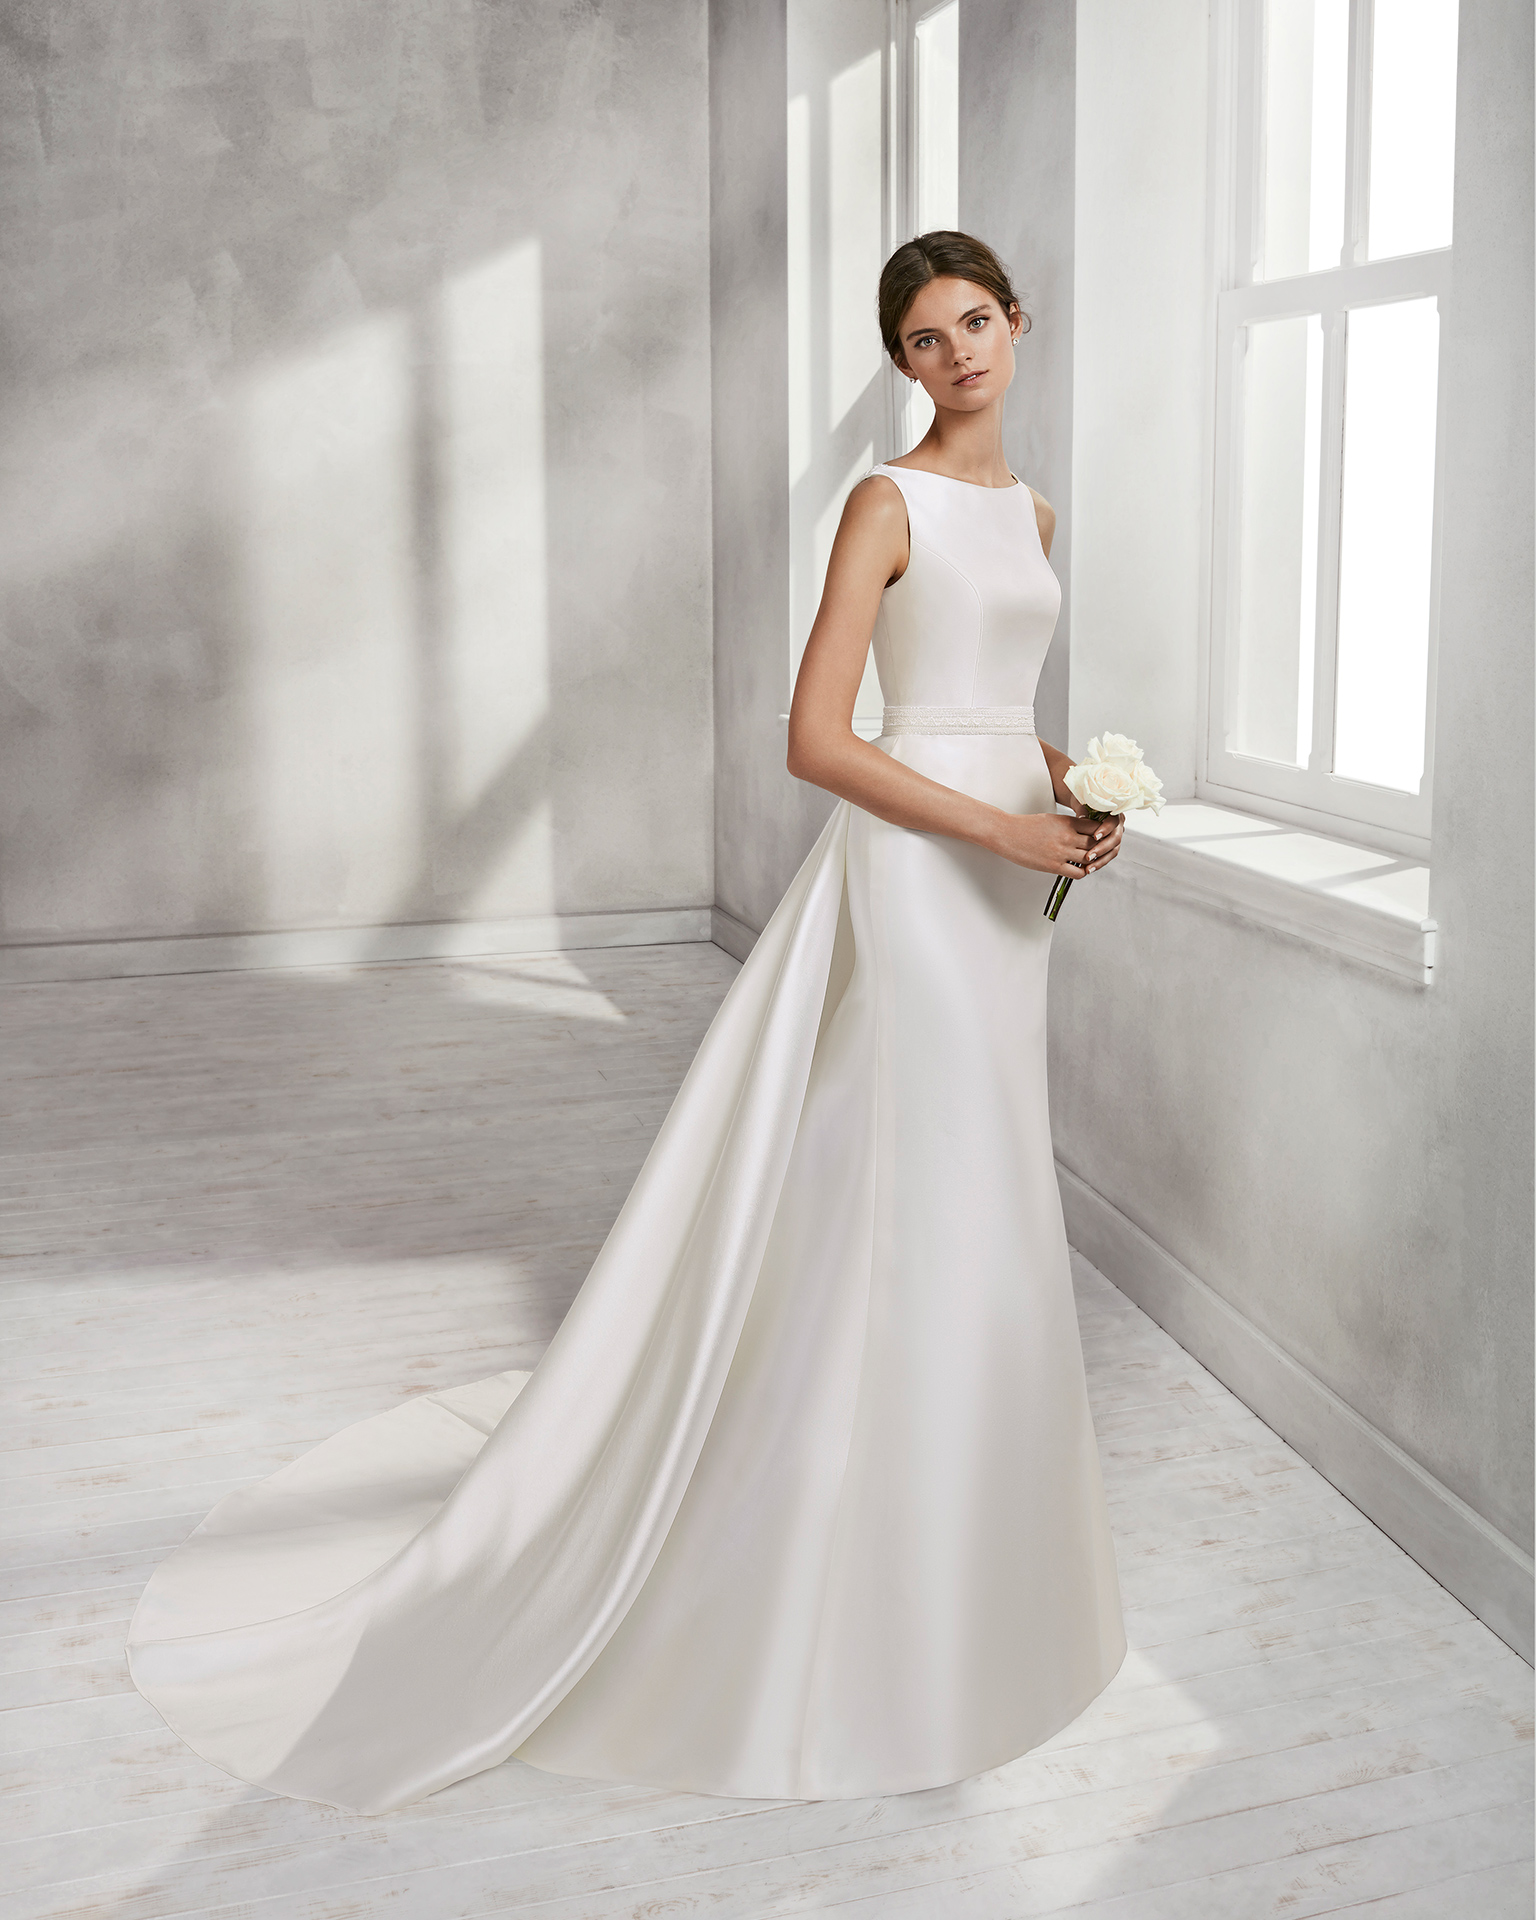 Mermaid-style mikado wedding dress with bateau neckline, beaded back and overskirt.